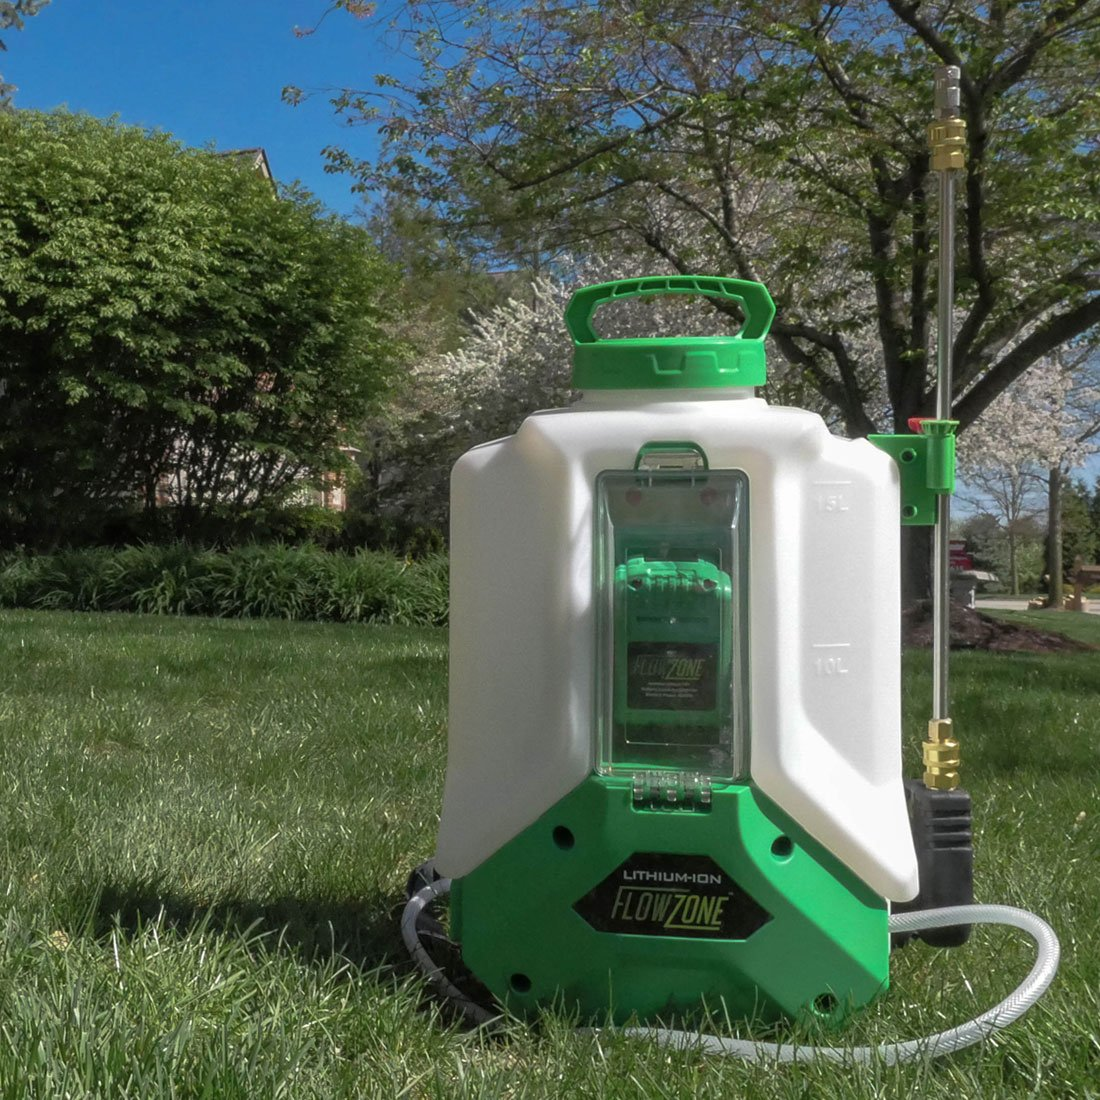 Typhoon 4-Gallon Multi-Use Continuous-Pressure 18V/5.2Ah Lithium-Ion Backpack Sprayer by FlowZone (Image #5)